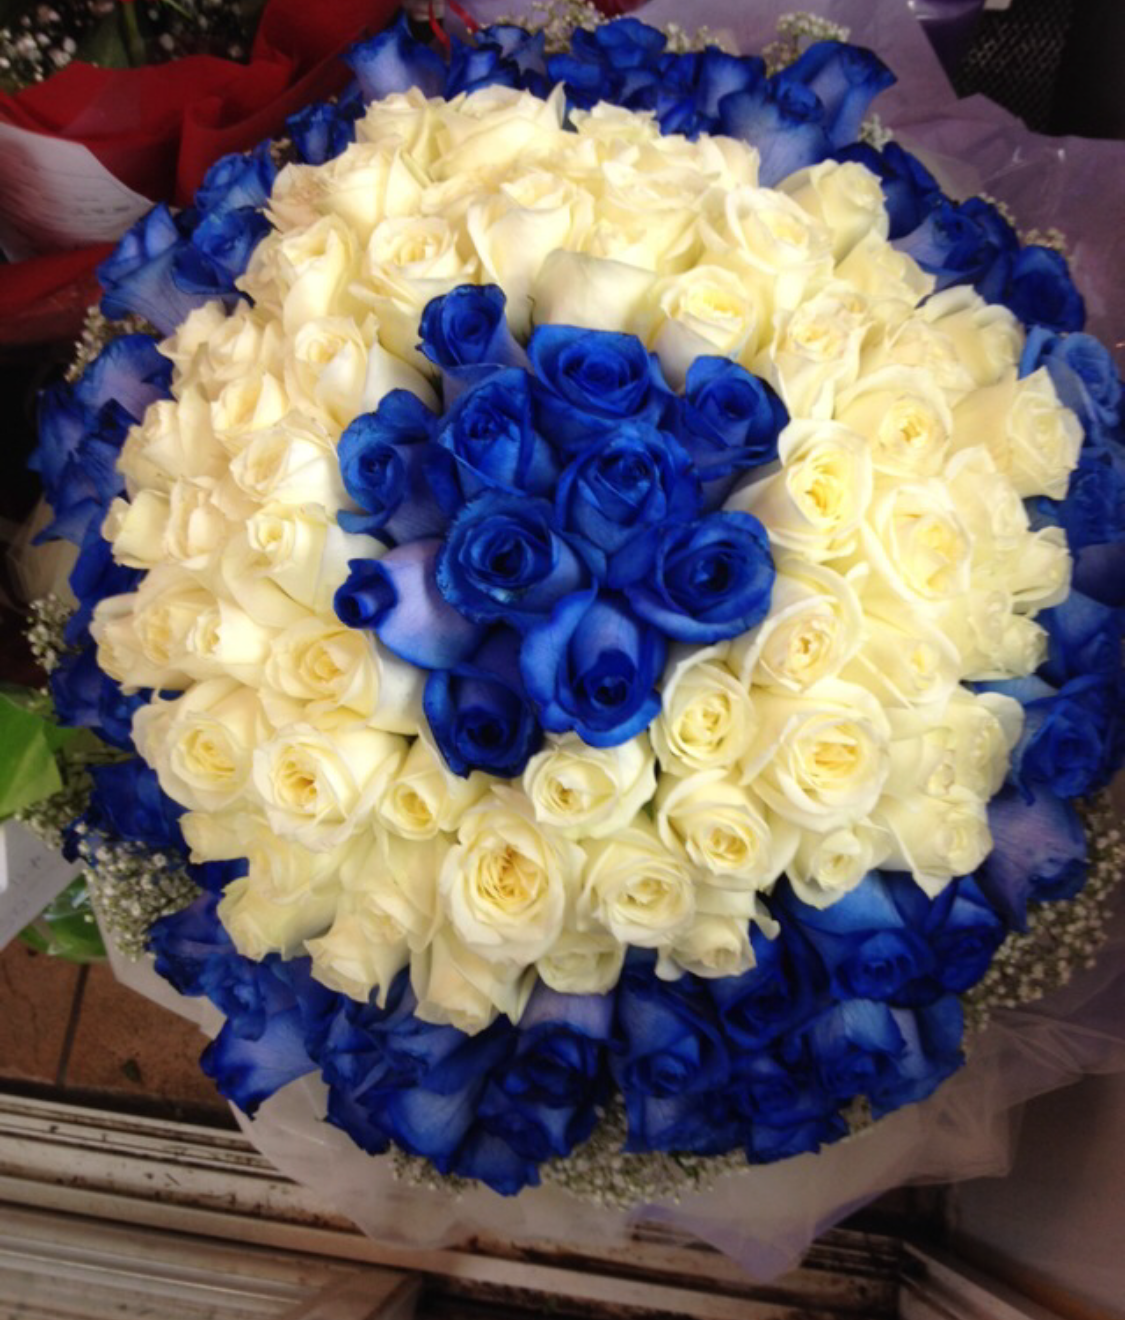 99 Blue and White Roses in Fancy Wrapping